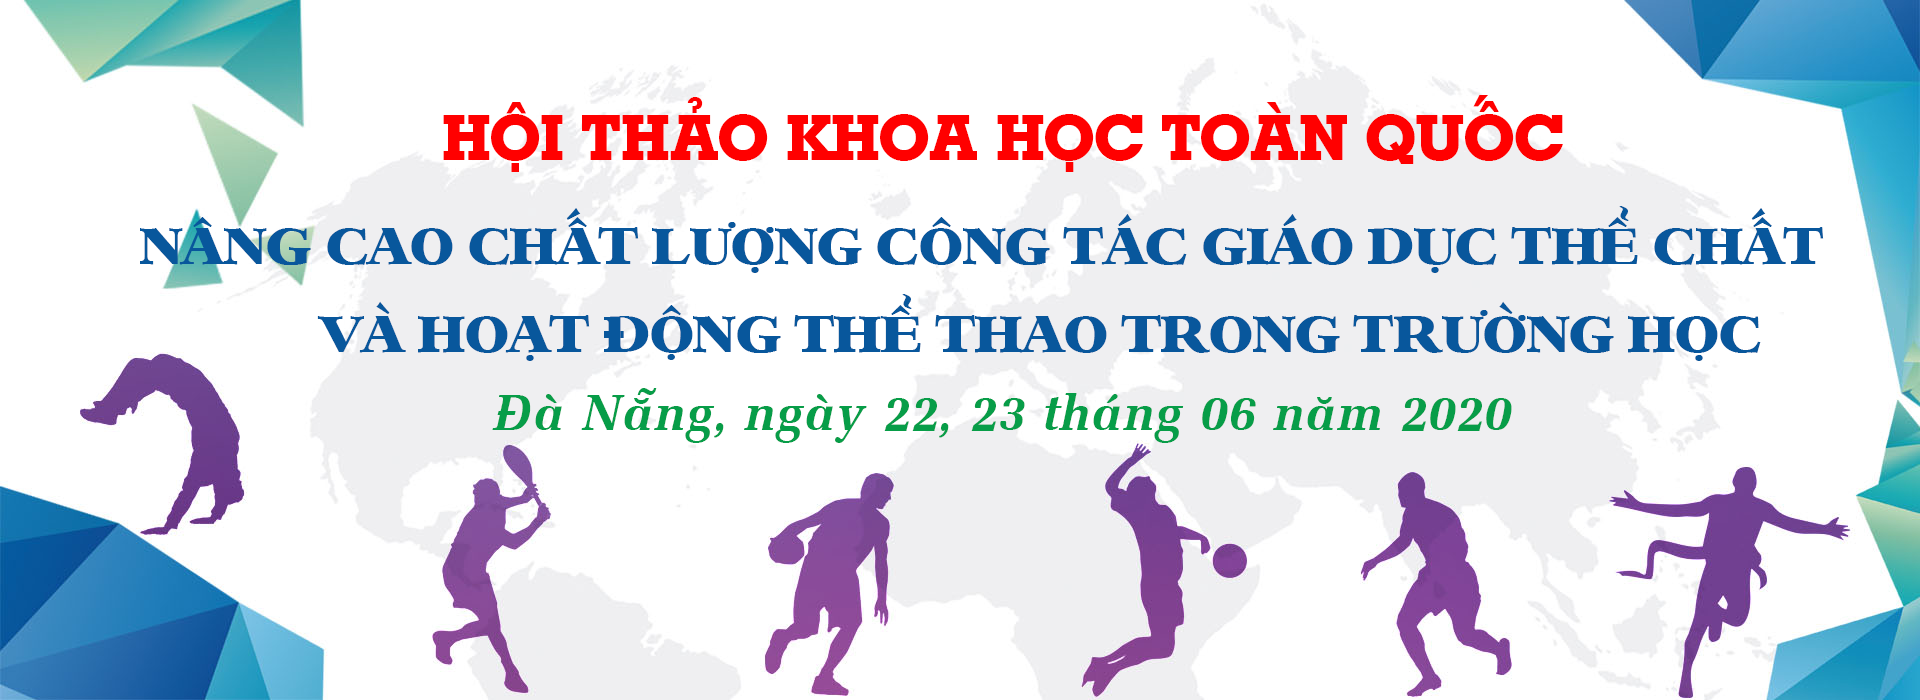 Hoi thao KH toan quoc 2020